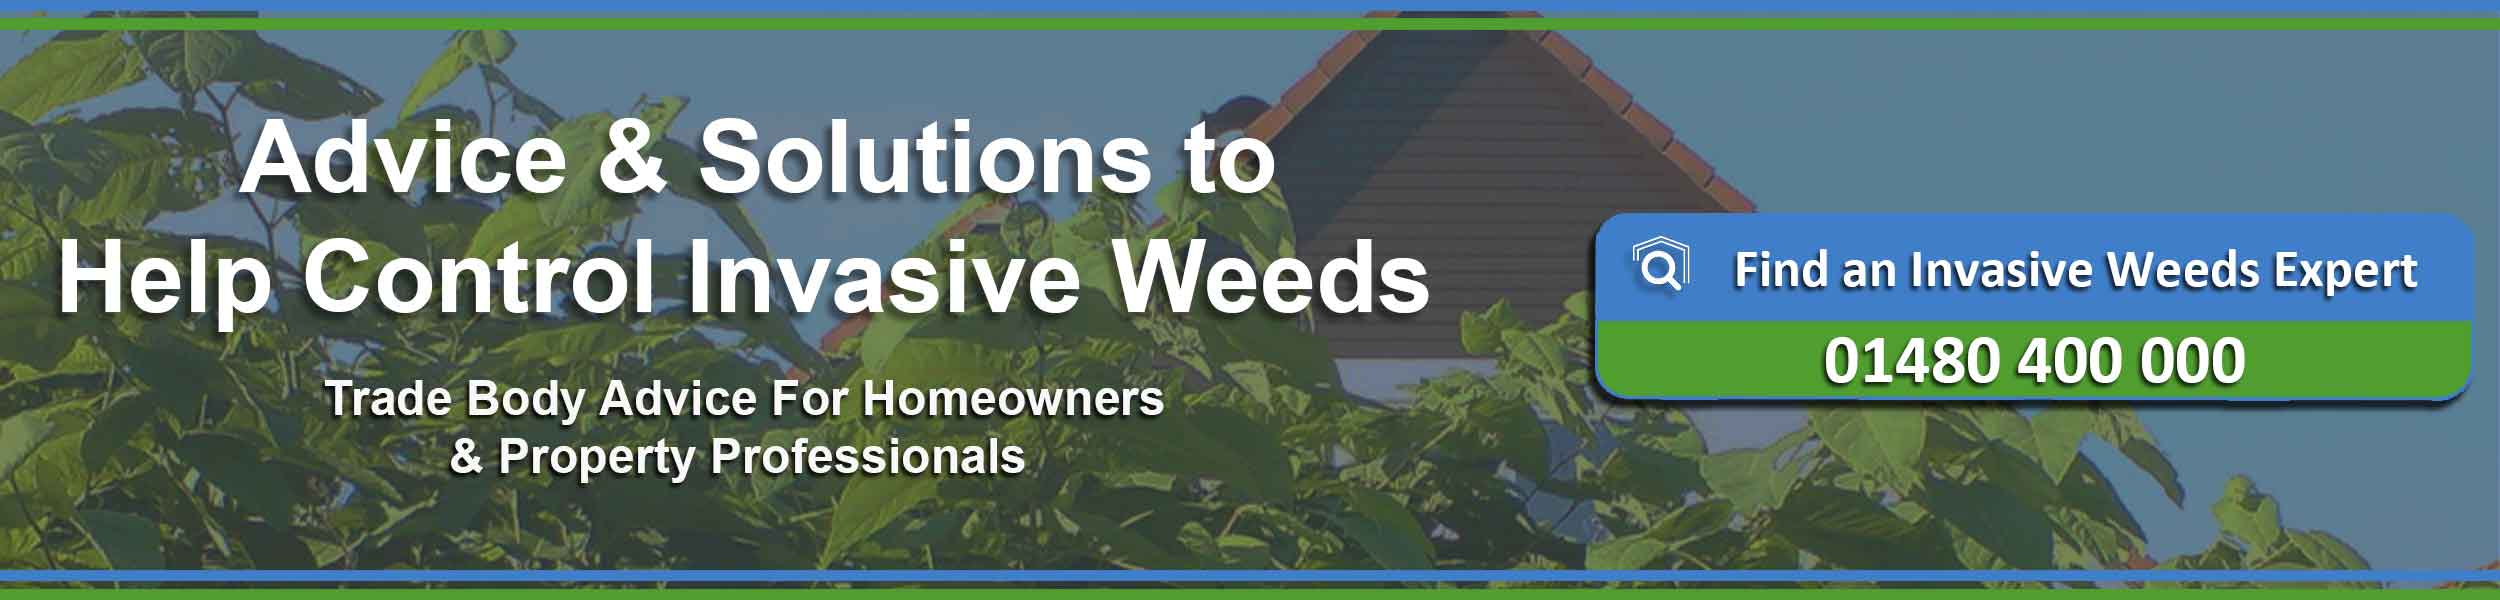 Invasive weeds - help and information